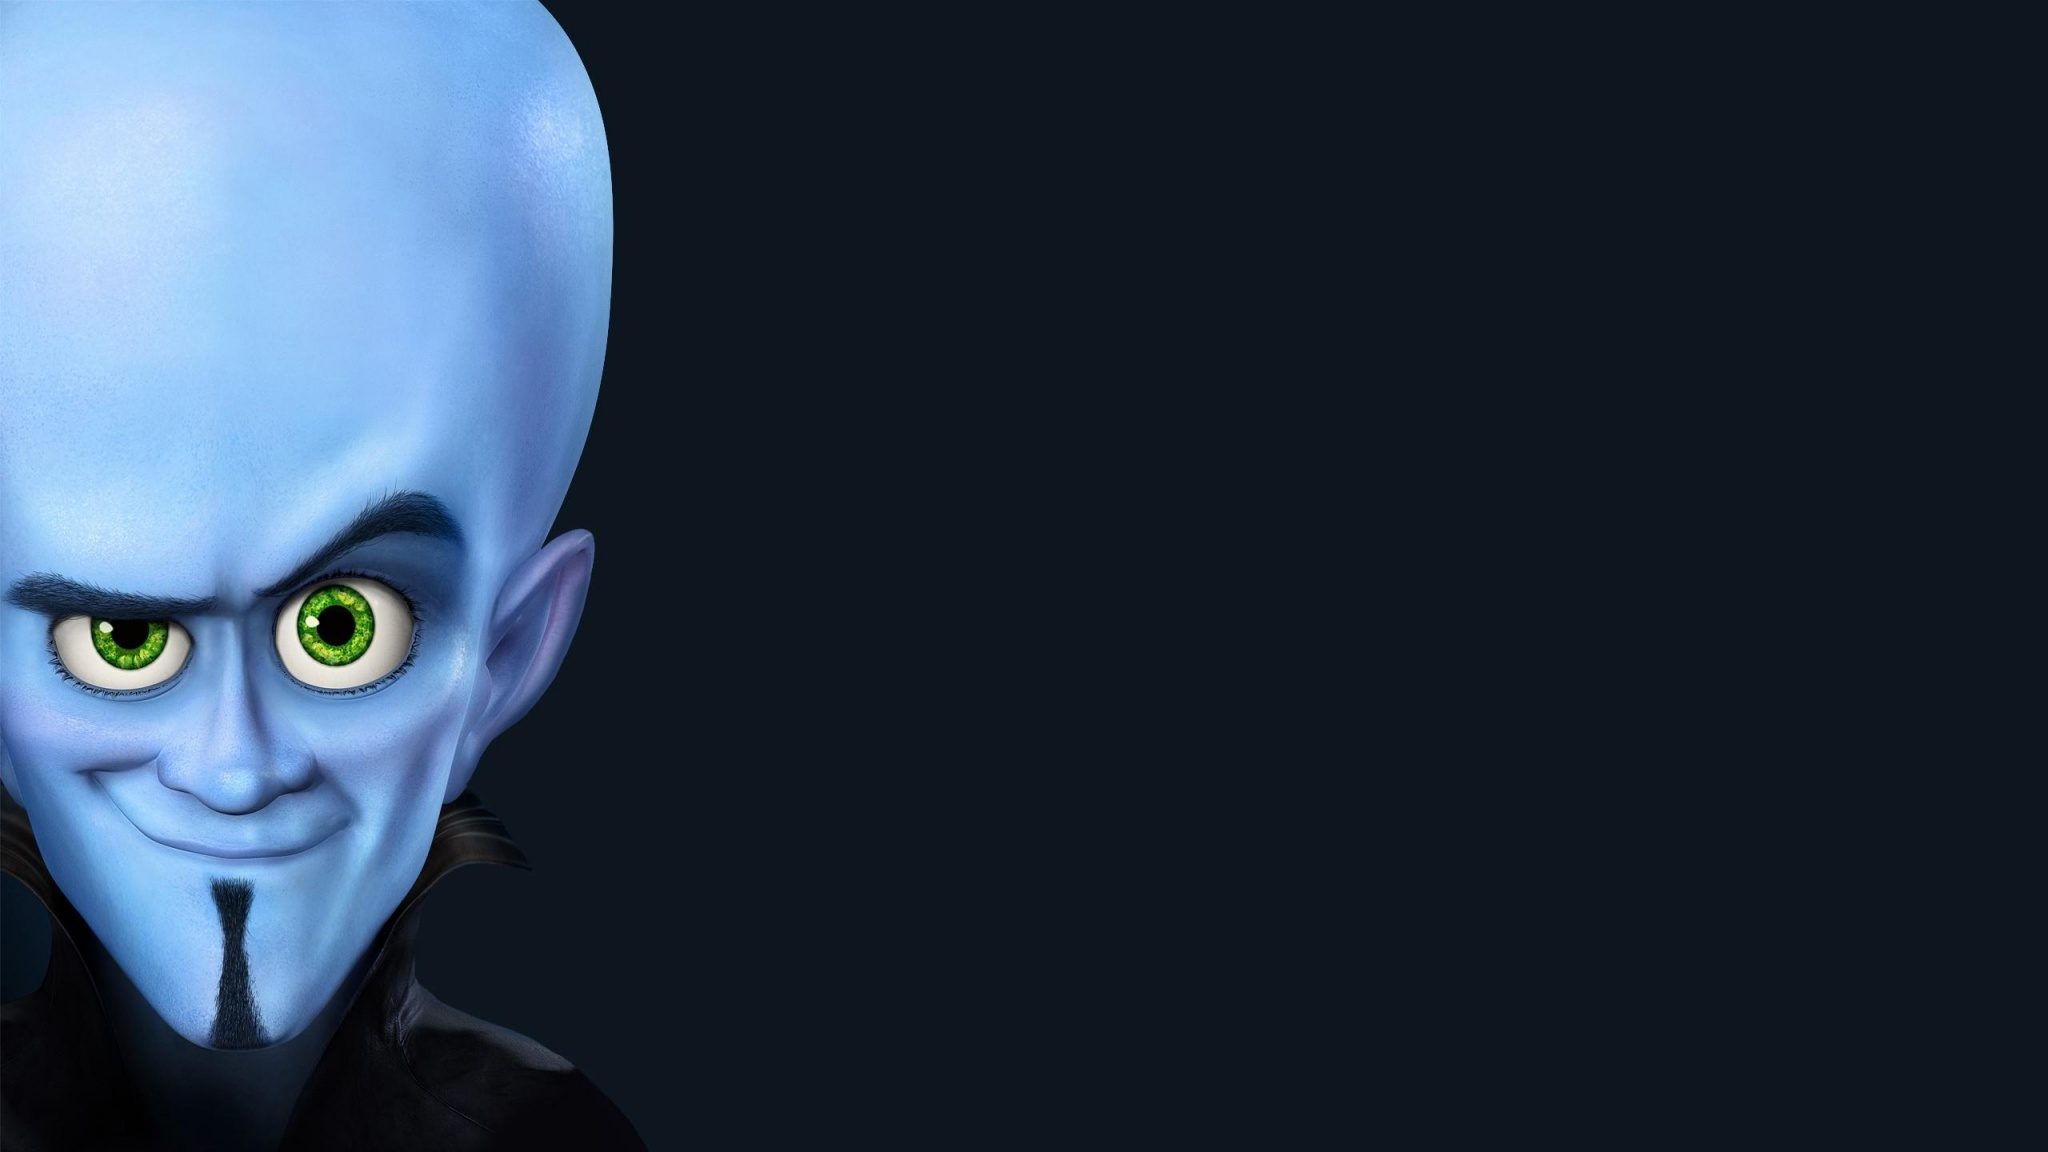 Megamind Cartoon Wallpapers 2048x1152 177471